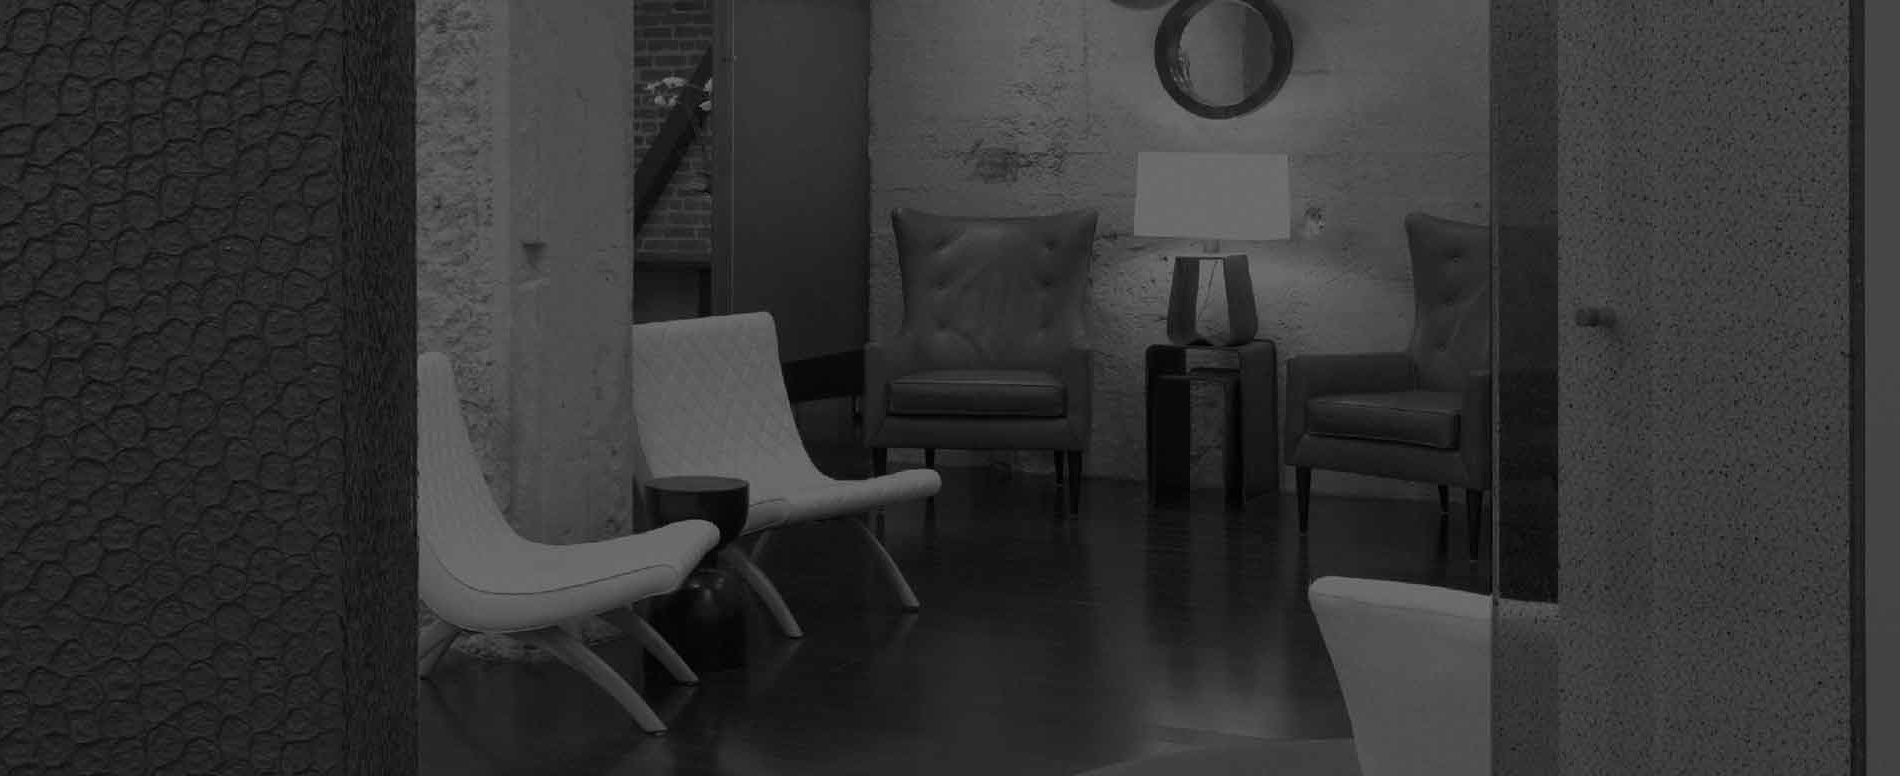 B&W image of a stylish waiting room.